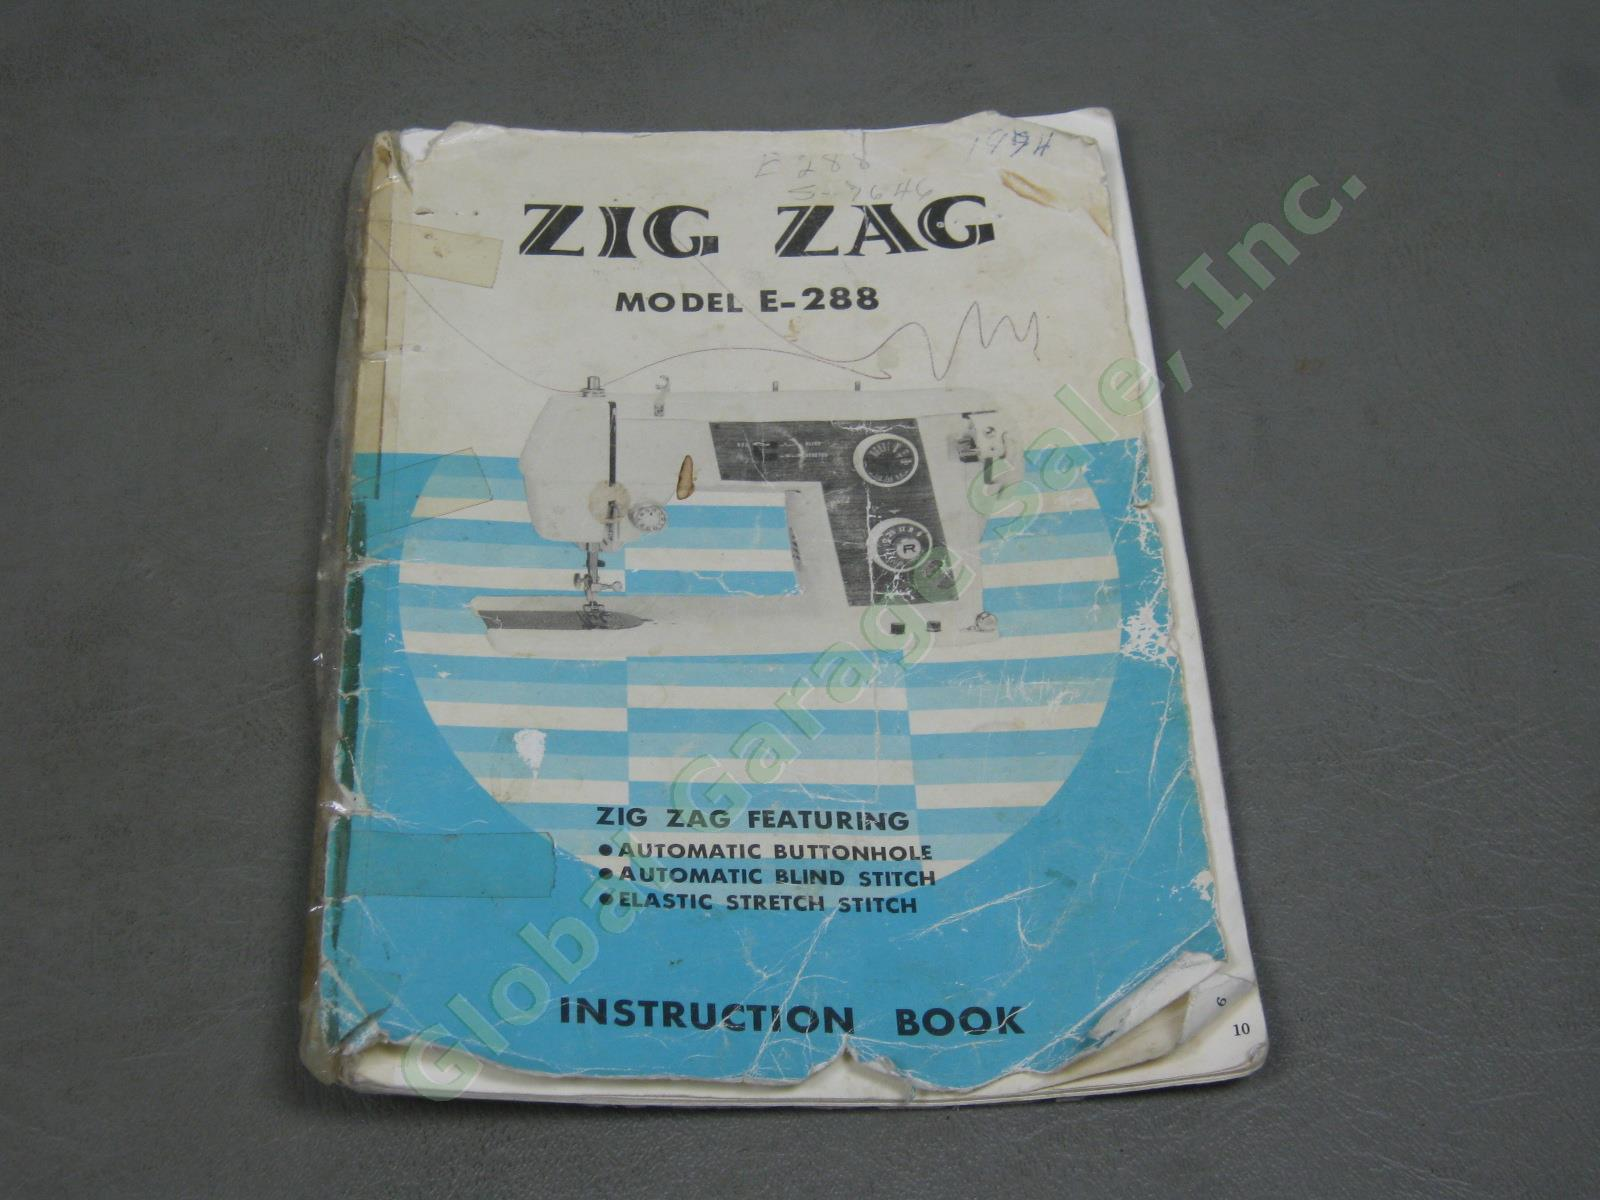 deluxe sewing machine precision built zigzag